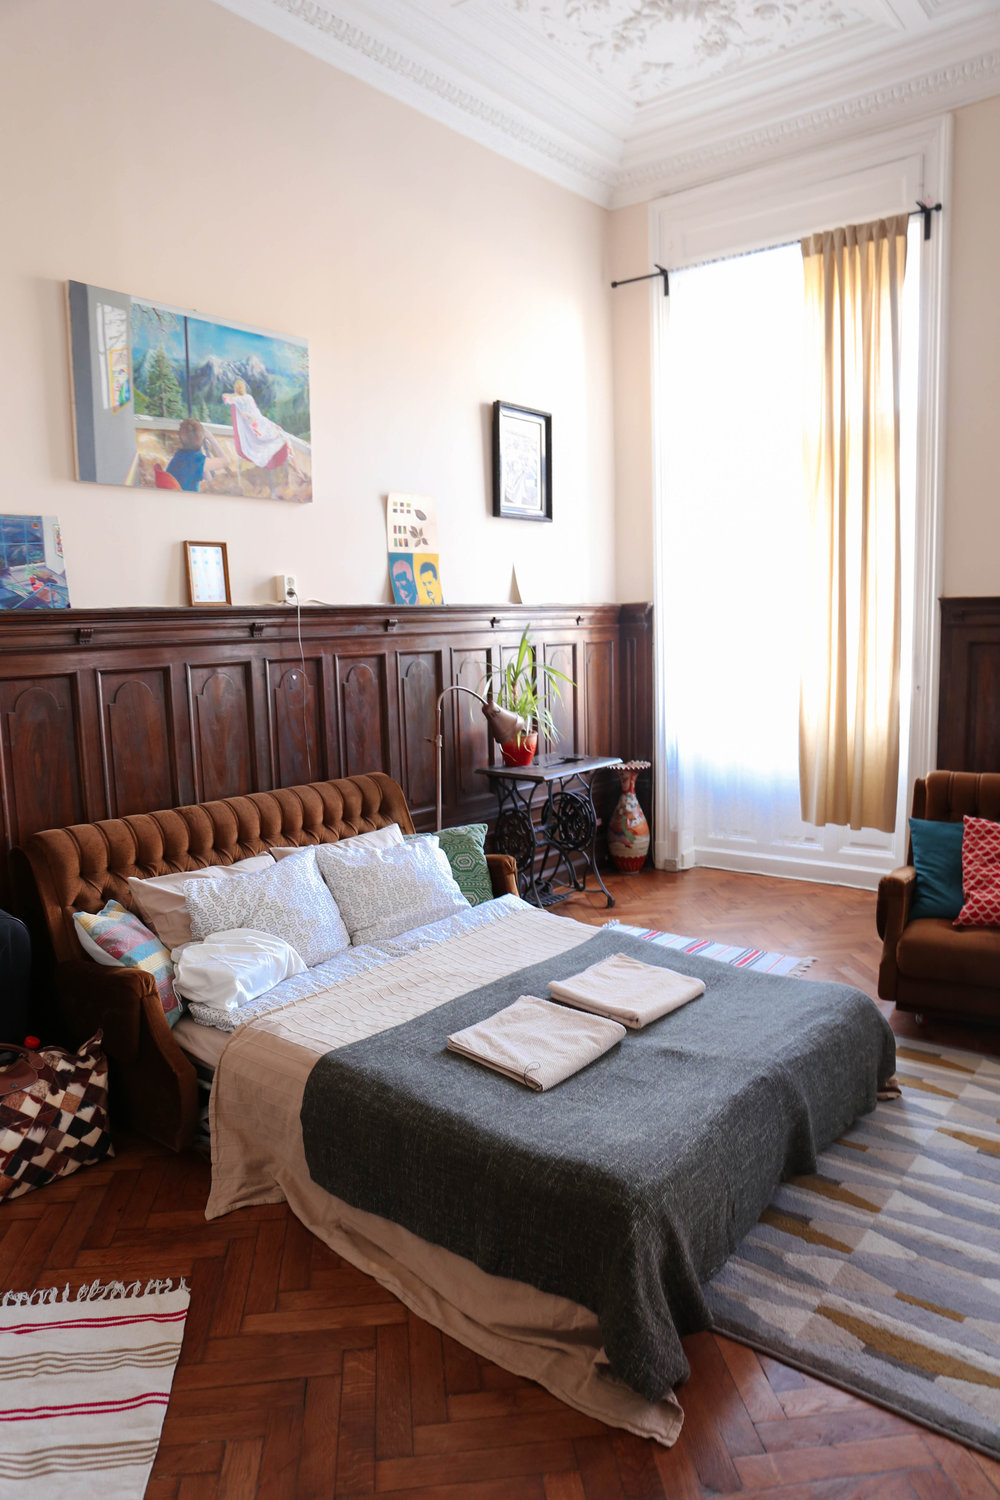 Budapest cozy chic airbnb: Lounding space / Bedroom